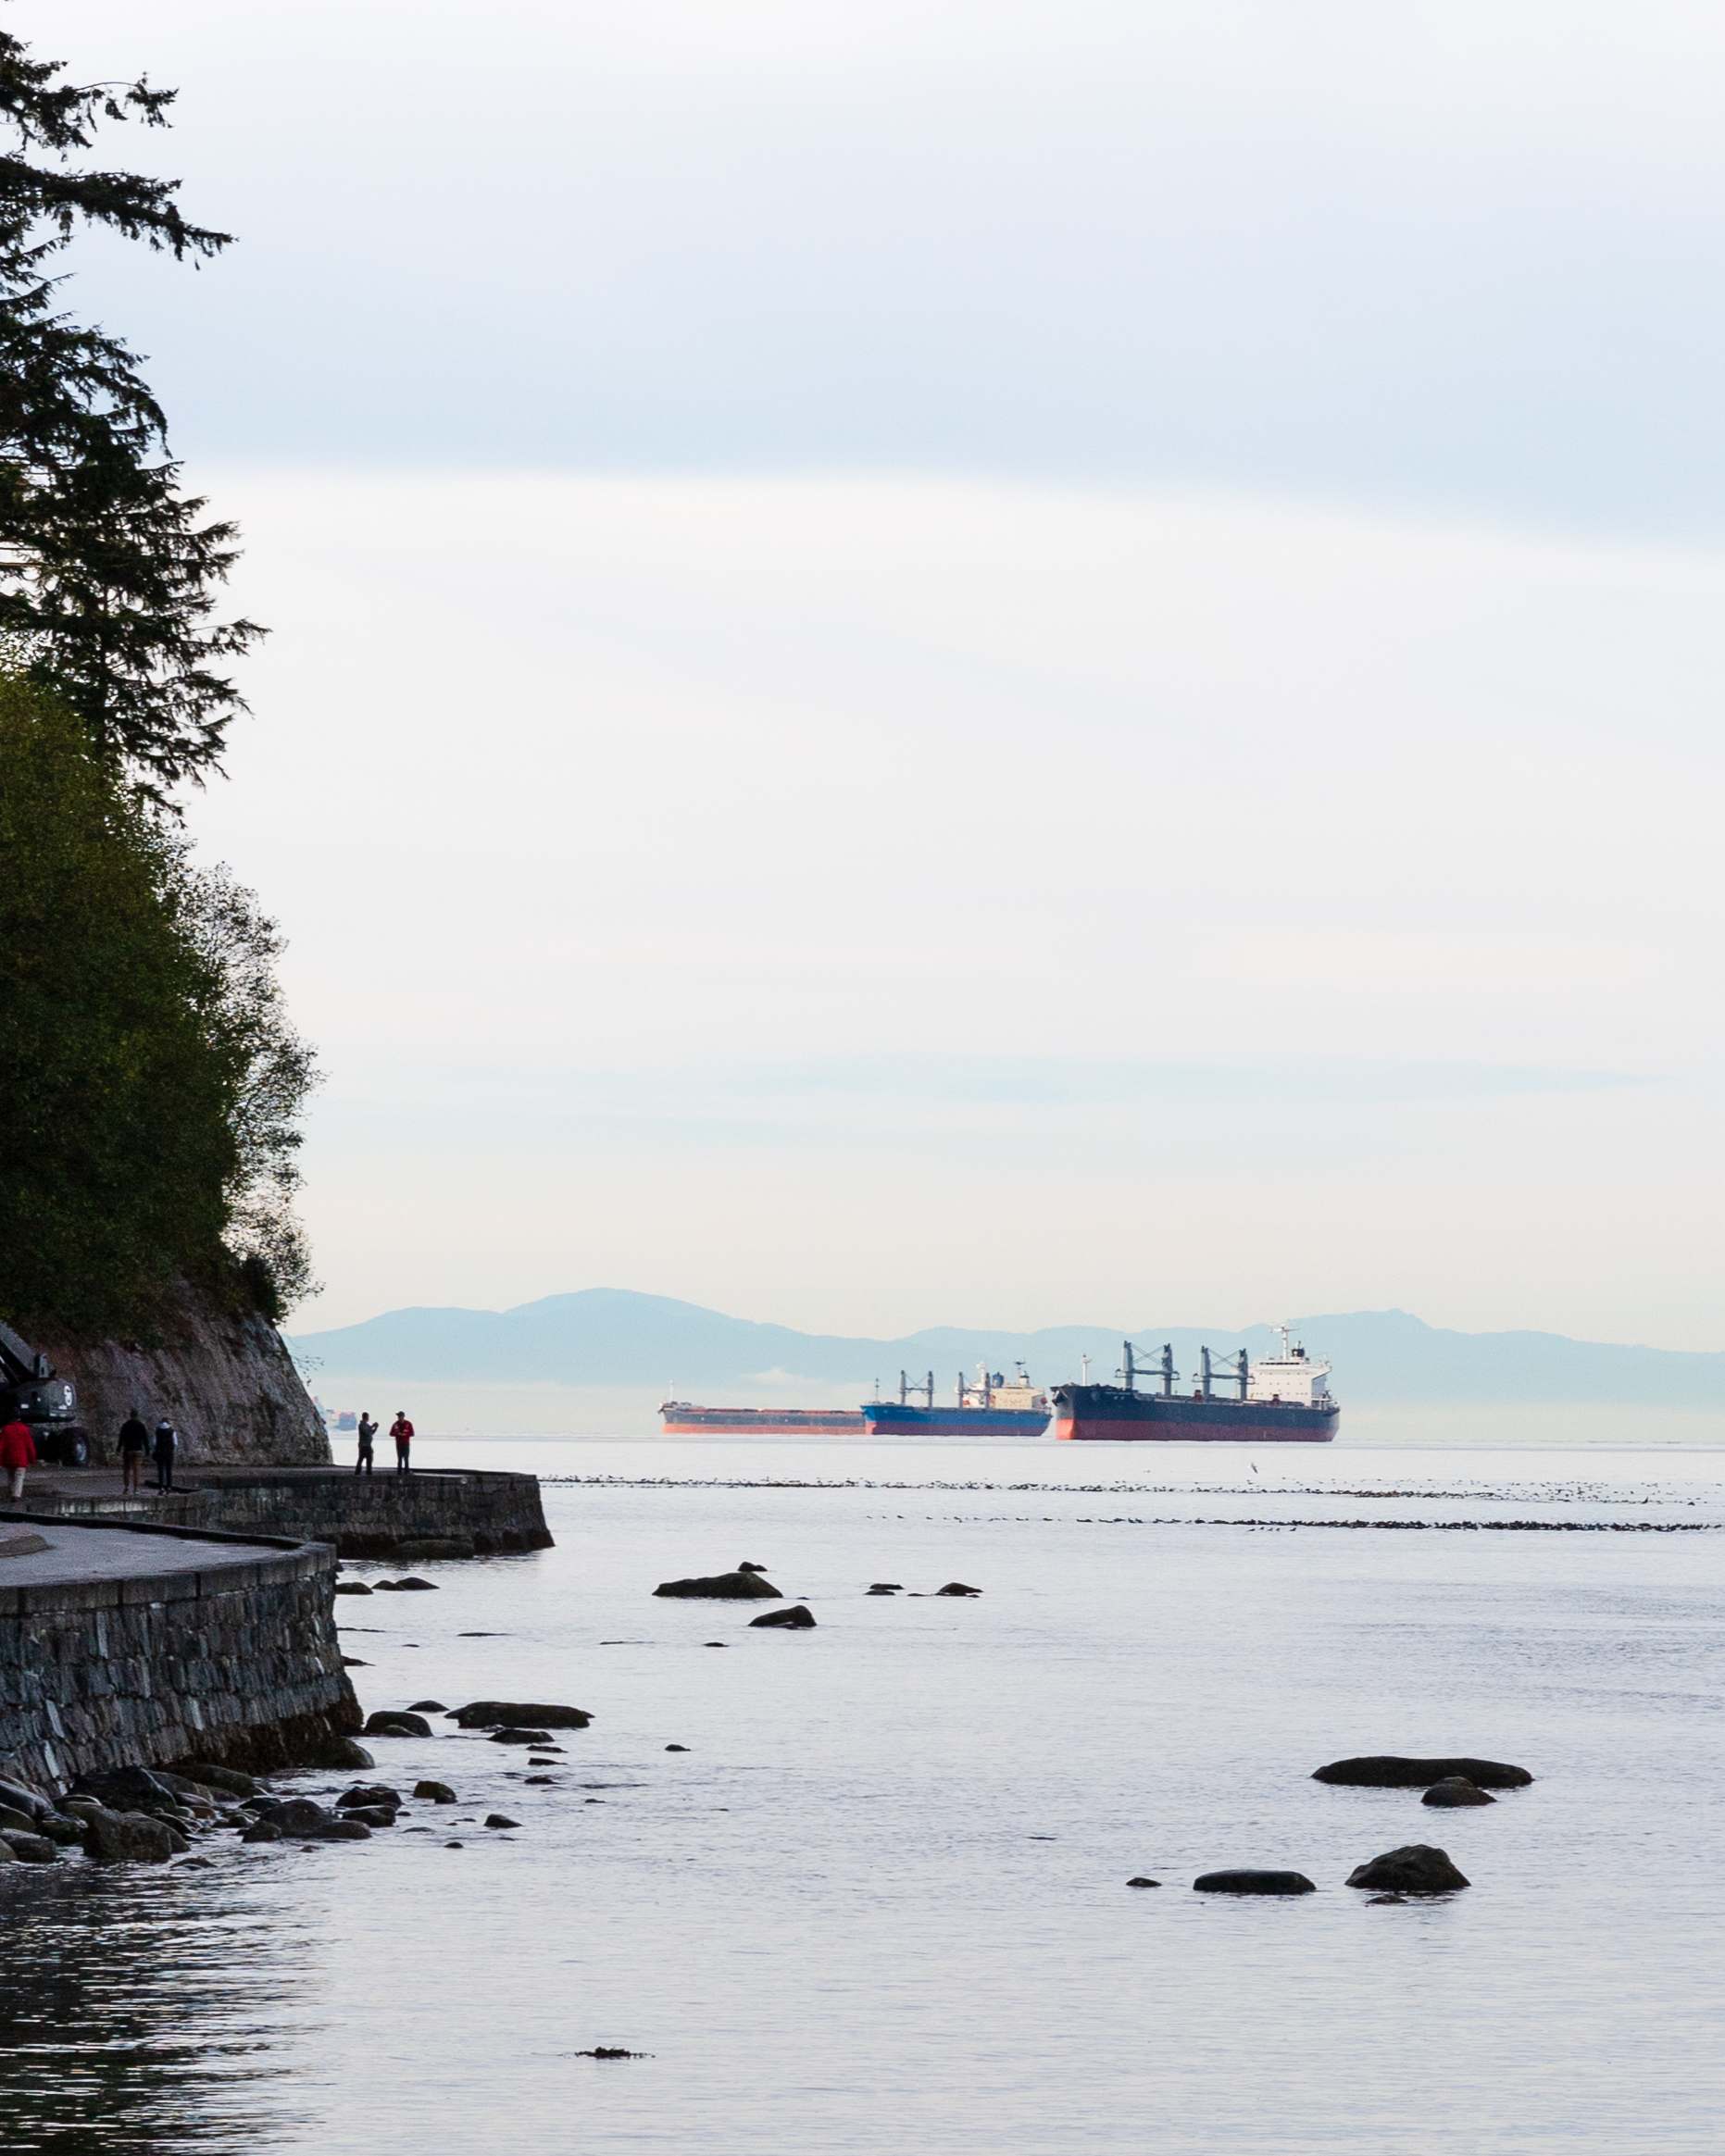 These ships parked up just off Stanley Park were arranged at a pleasing angle and disappearing into the haze nicely. I did wish I'd brought out my 80-200mm so I could get in closer but it is quite heavy.